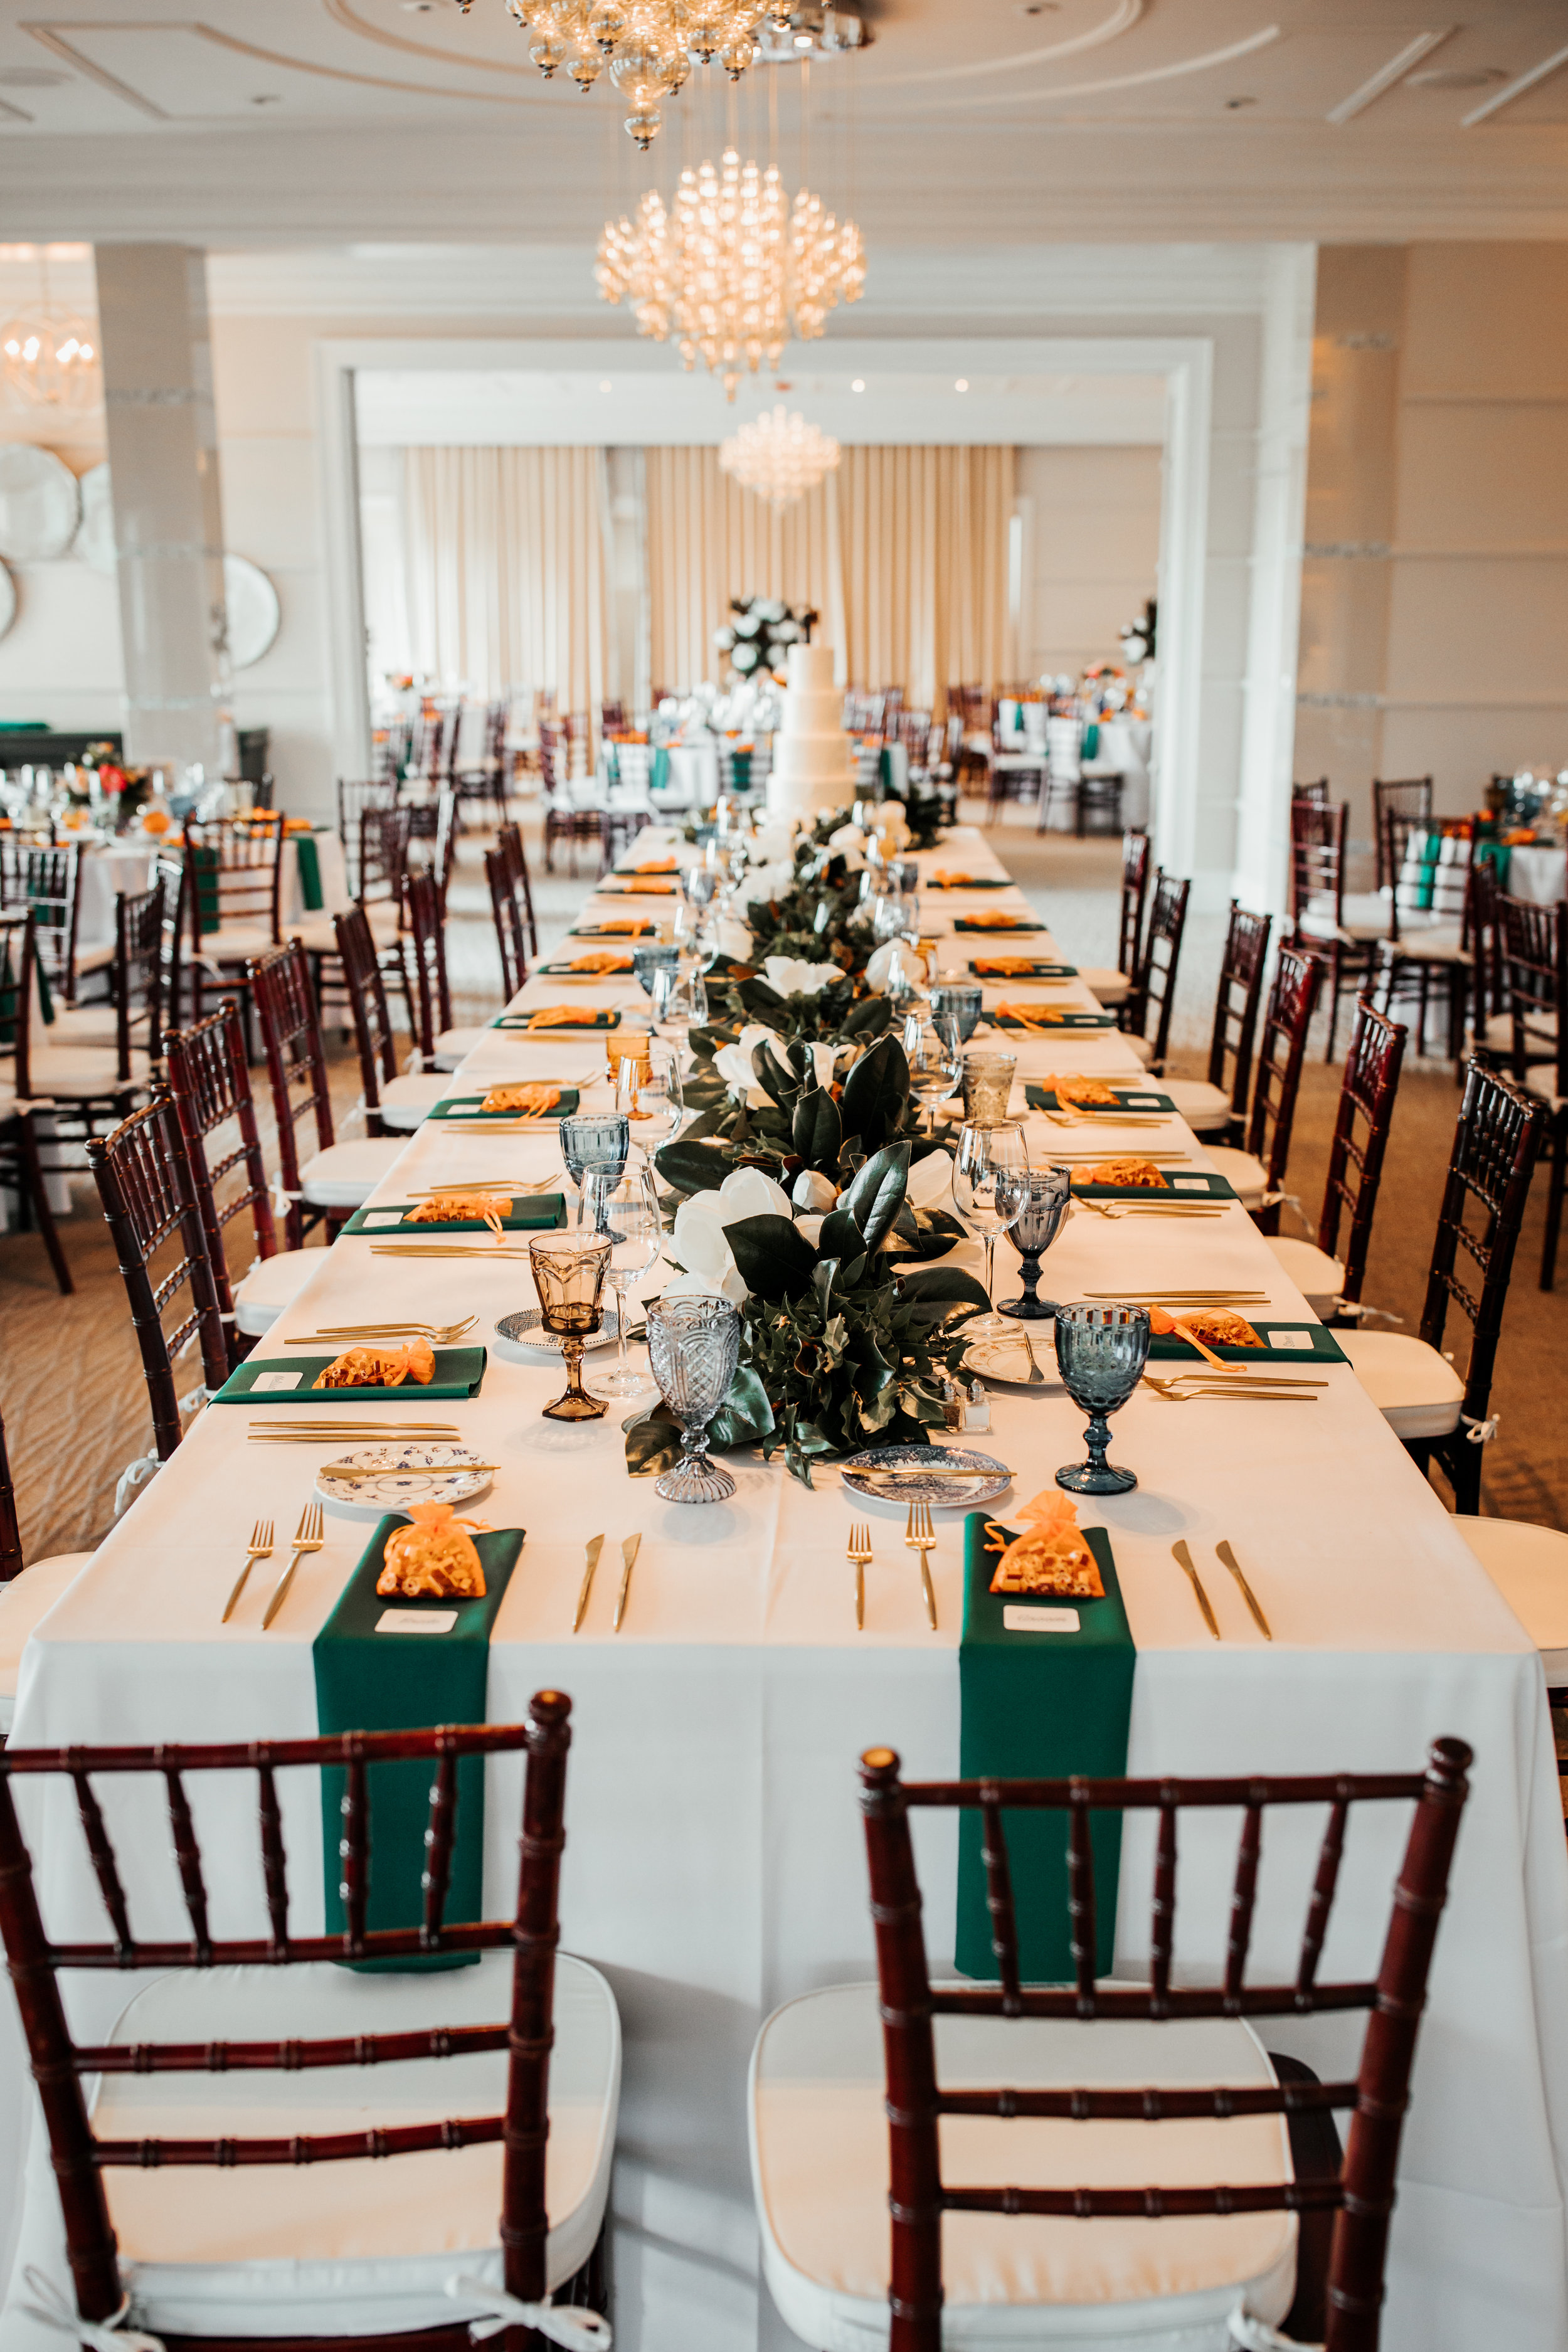 Old Florida Style Wedding in Orlando, Florida  Orlando Wedding Planner Blue Ribbon Weddings  Orlando Wedding Photographer 28 North Photography  Orlando Wedding Florist Bluegrass Chic  Wedding Ceremony & Reception at Lake Nona Golf & Country Club